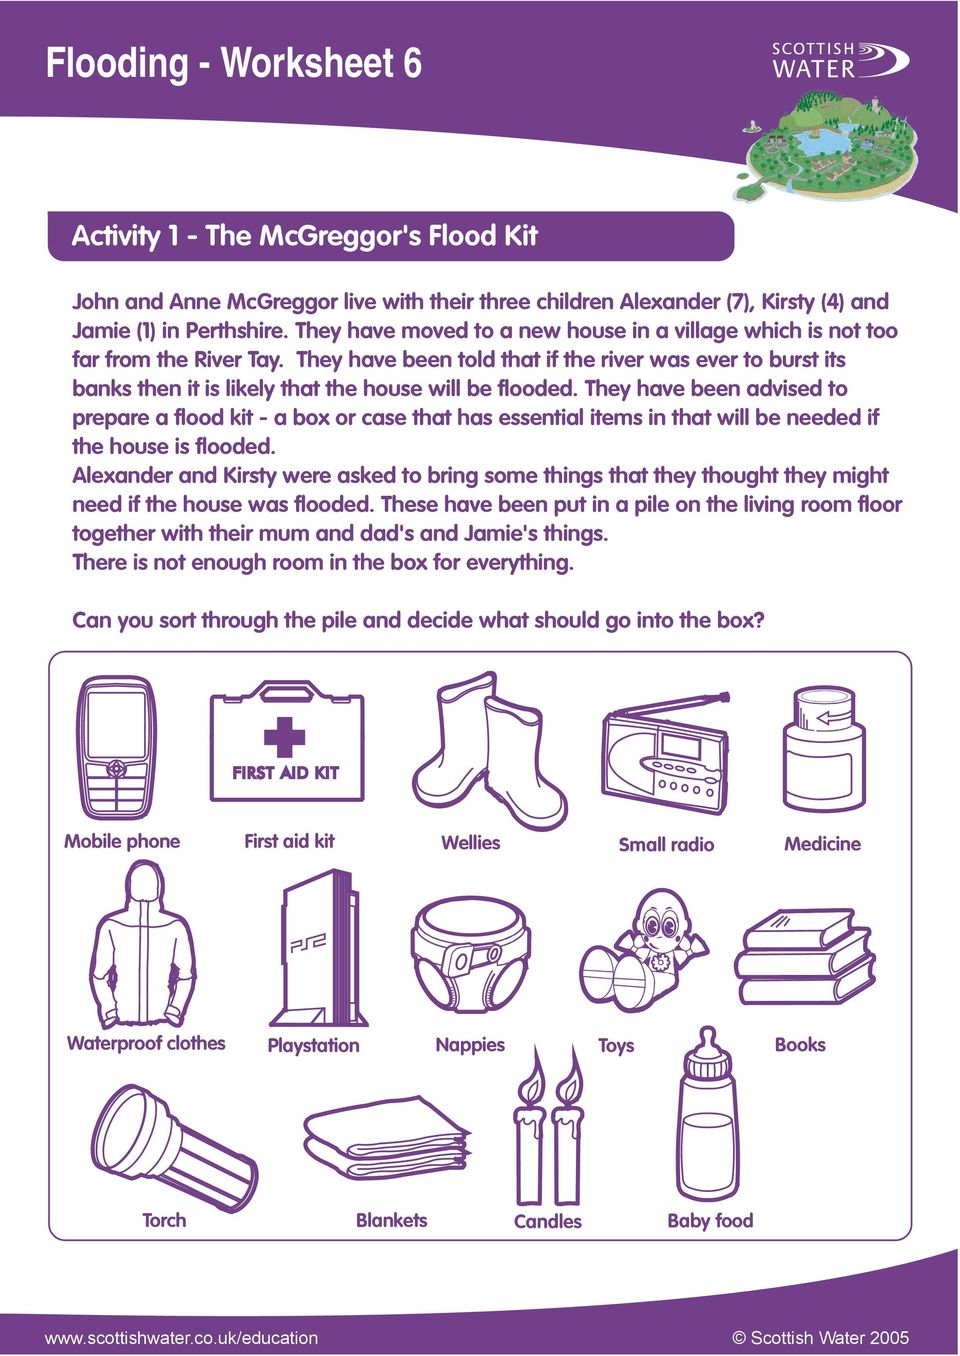 They have been advised to prepare a flood kit - a box or case that has essential items in that will be needed if the house is flooded.